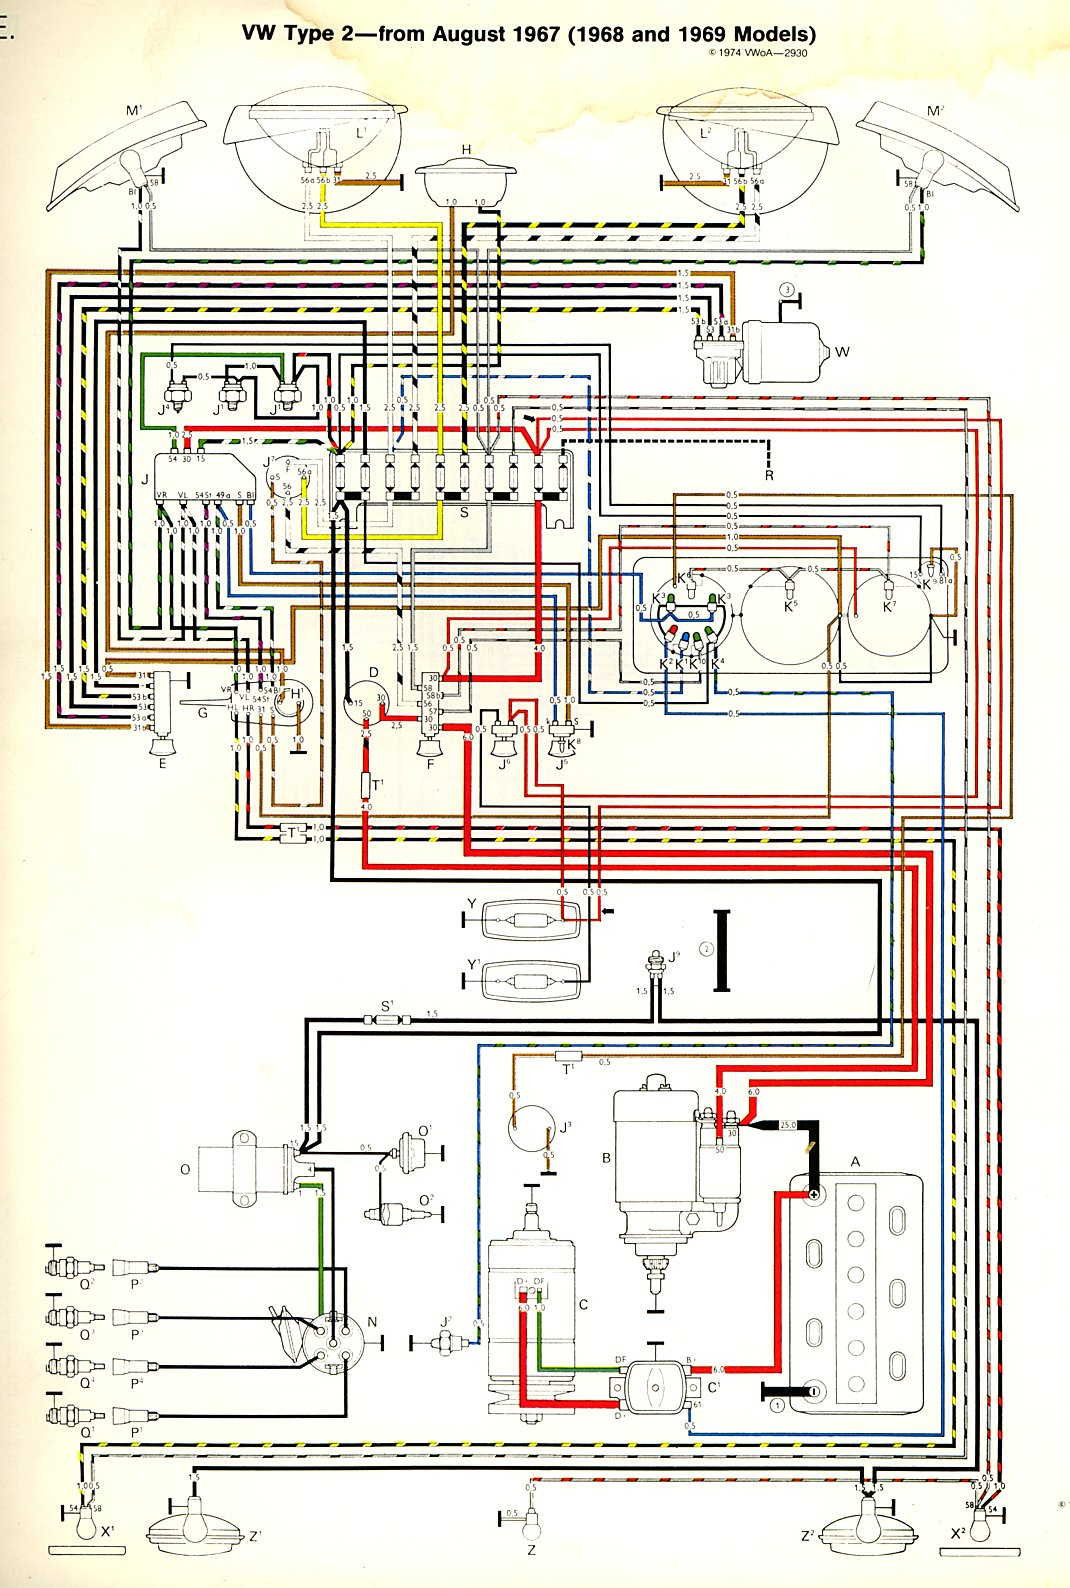 baybus_6869a 1968 69 bus wiring diagram thegoldenbug com 1973 vw super beetle wiring diagram at sewacar.co